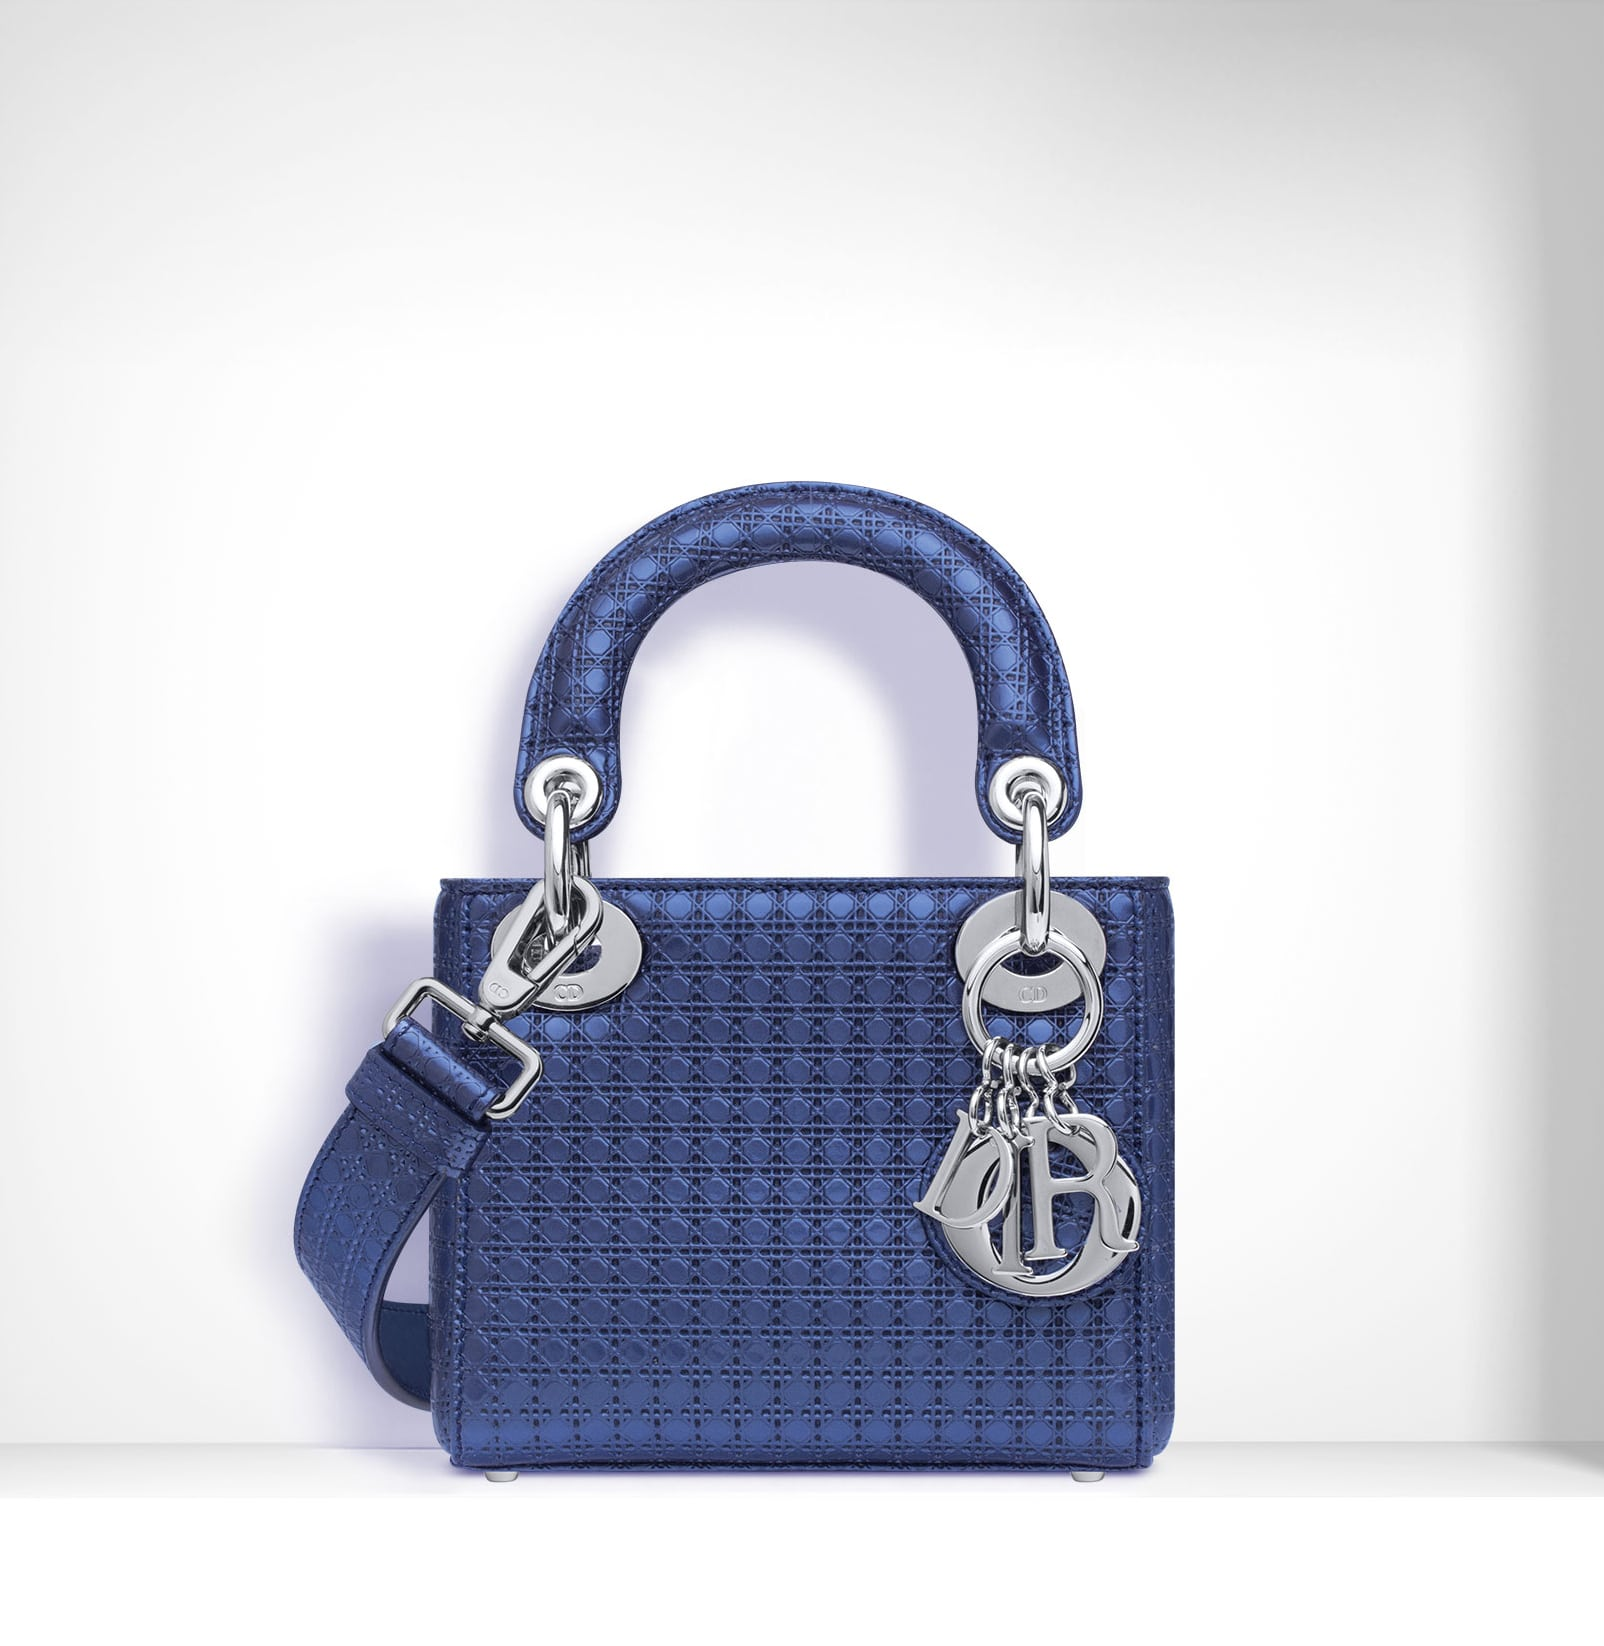 Dior Blue Metallic Perforated Lady Micro Bag